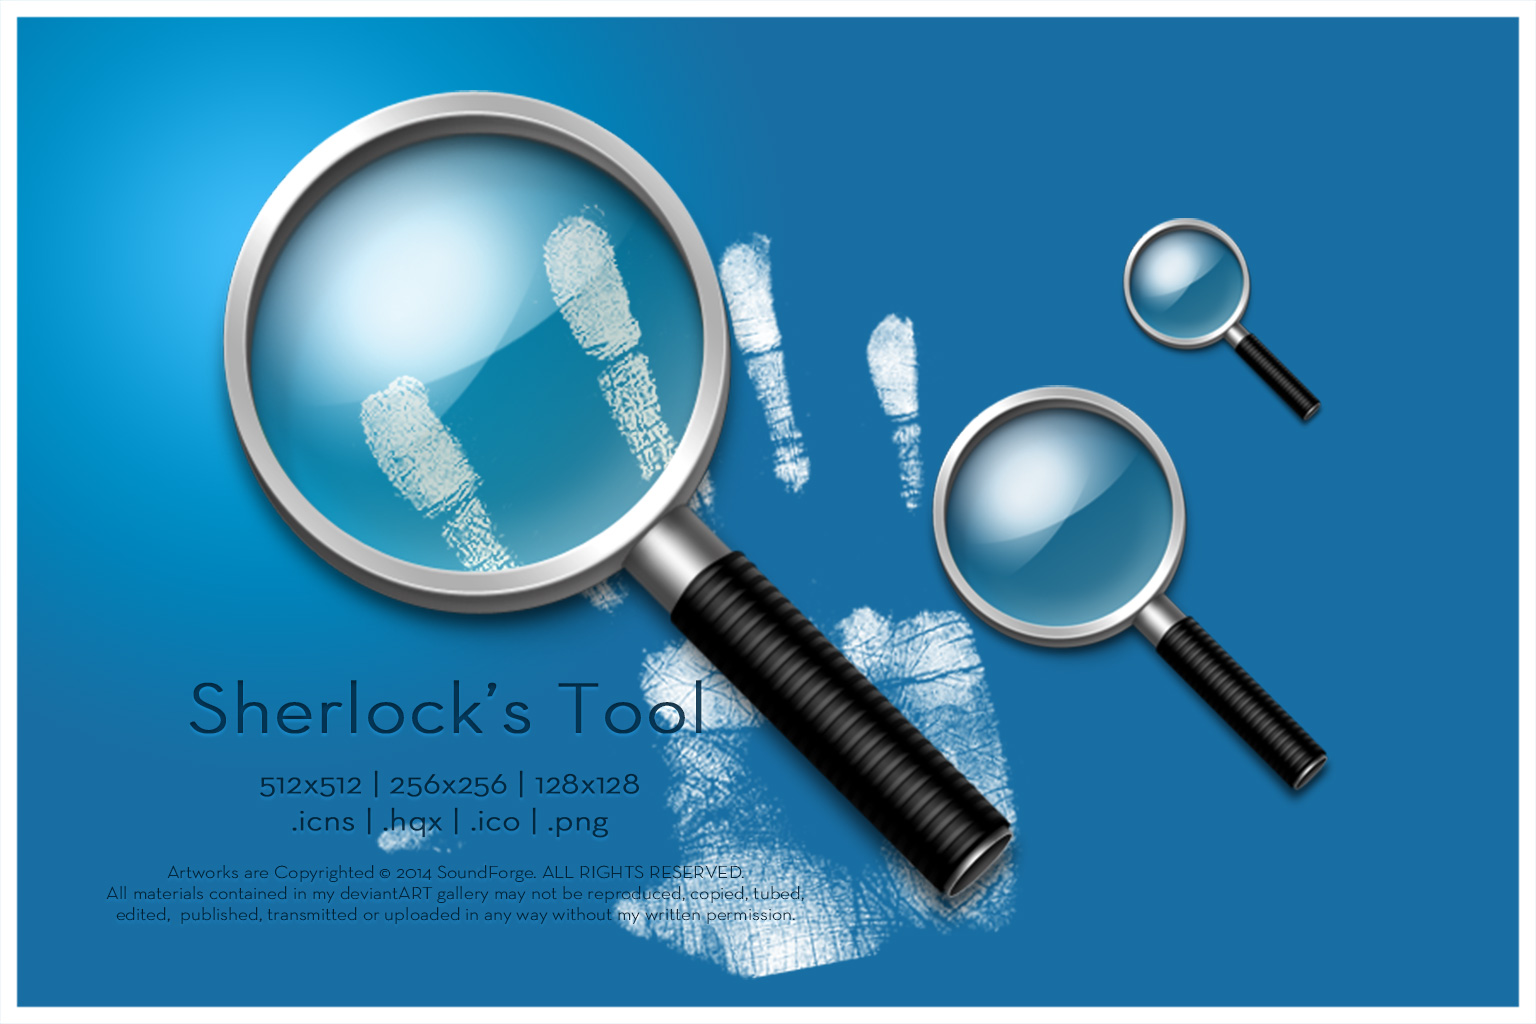 Sherlock's Tool by SoundForge